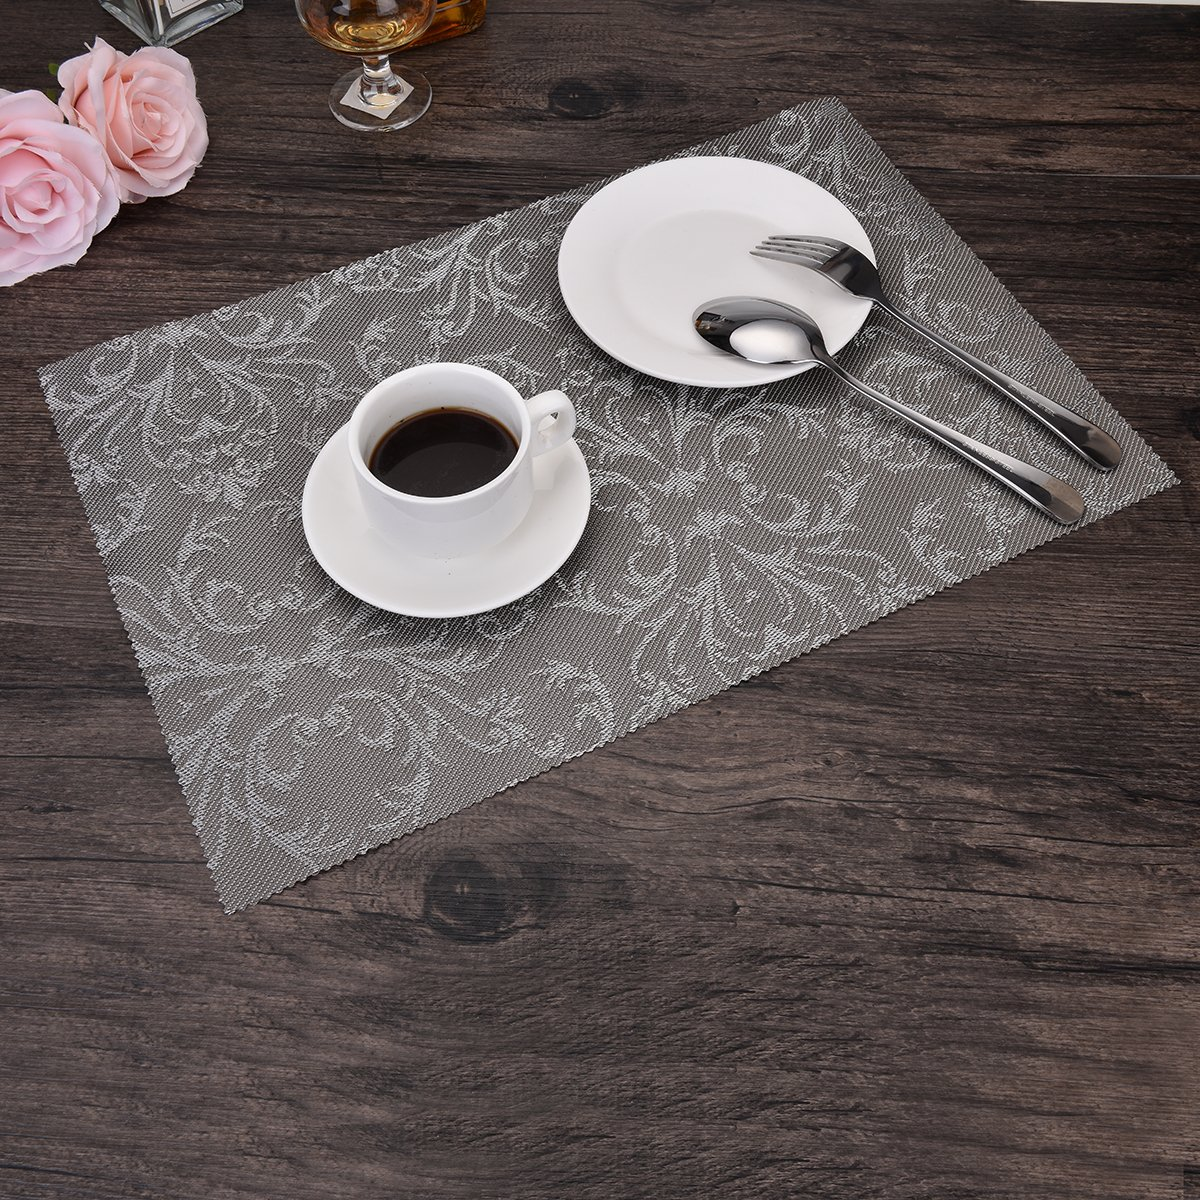 OZCHIN Placemats Dining Kitchen Table Non-slip Insulation Placemat Washable Table Mats Set of 4 Silver by OZCHIN (Image #6)